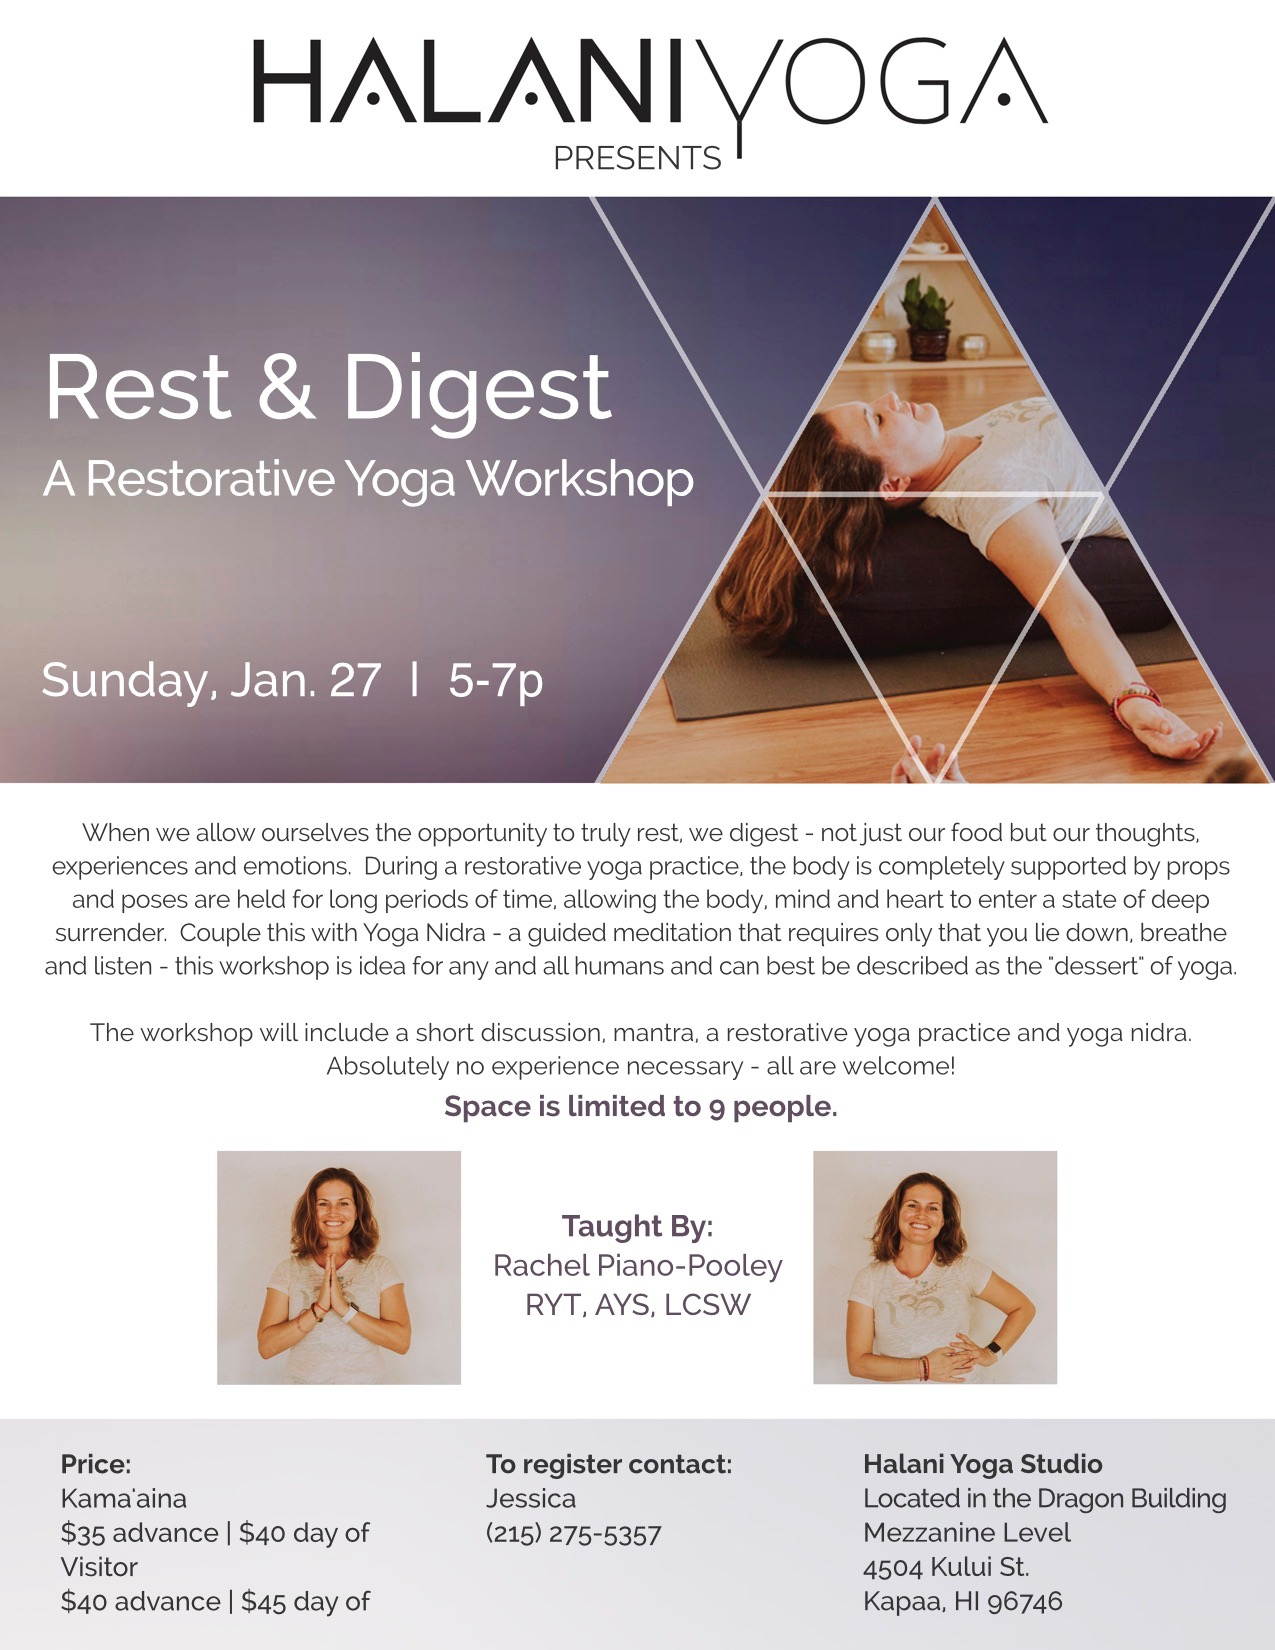 "I am VERY excited to offer space for the ""ultimate nervous system restoration package""- chant, rest, digest, and meditate, all while working on a goal/intention. Contact Jessica on the flier for more information. Space is limited!"